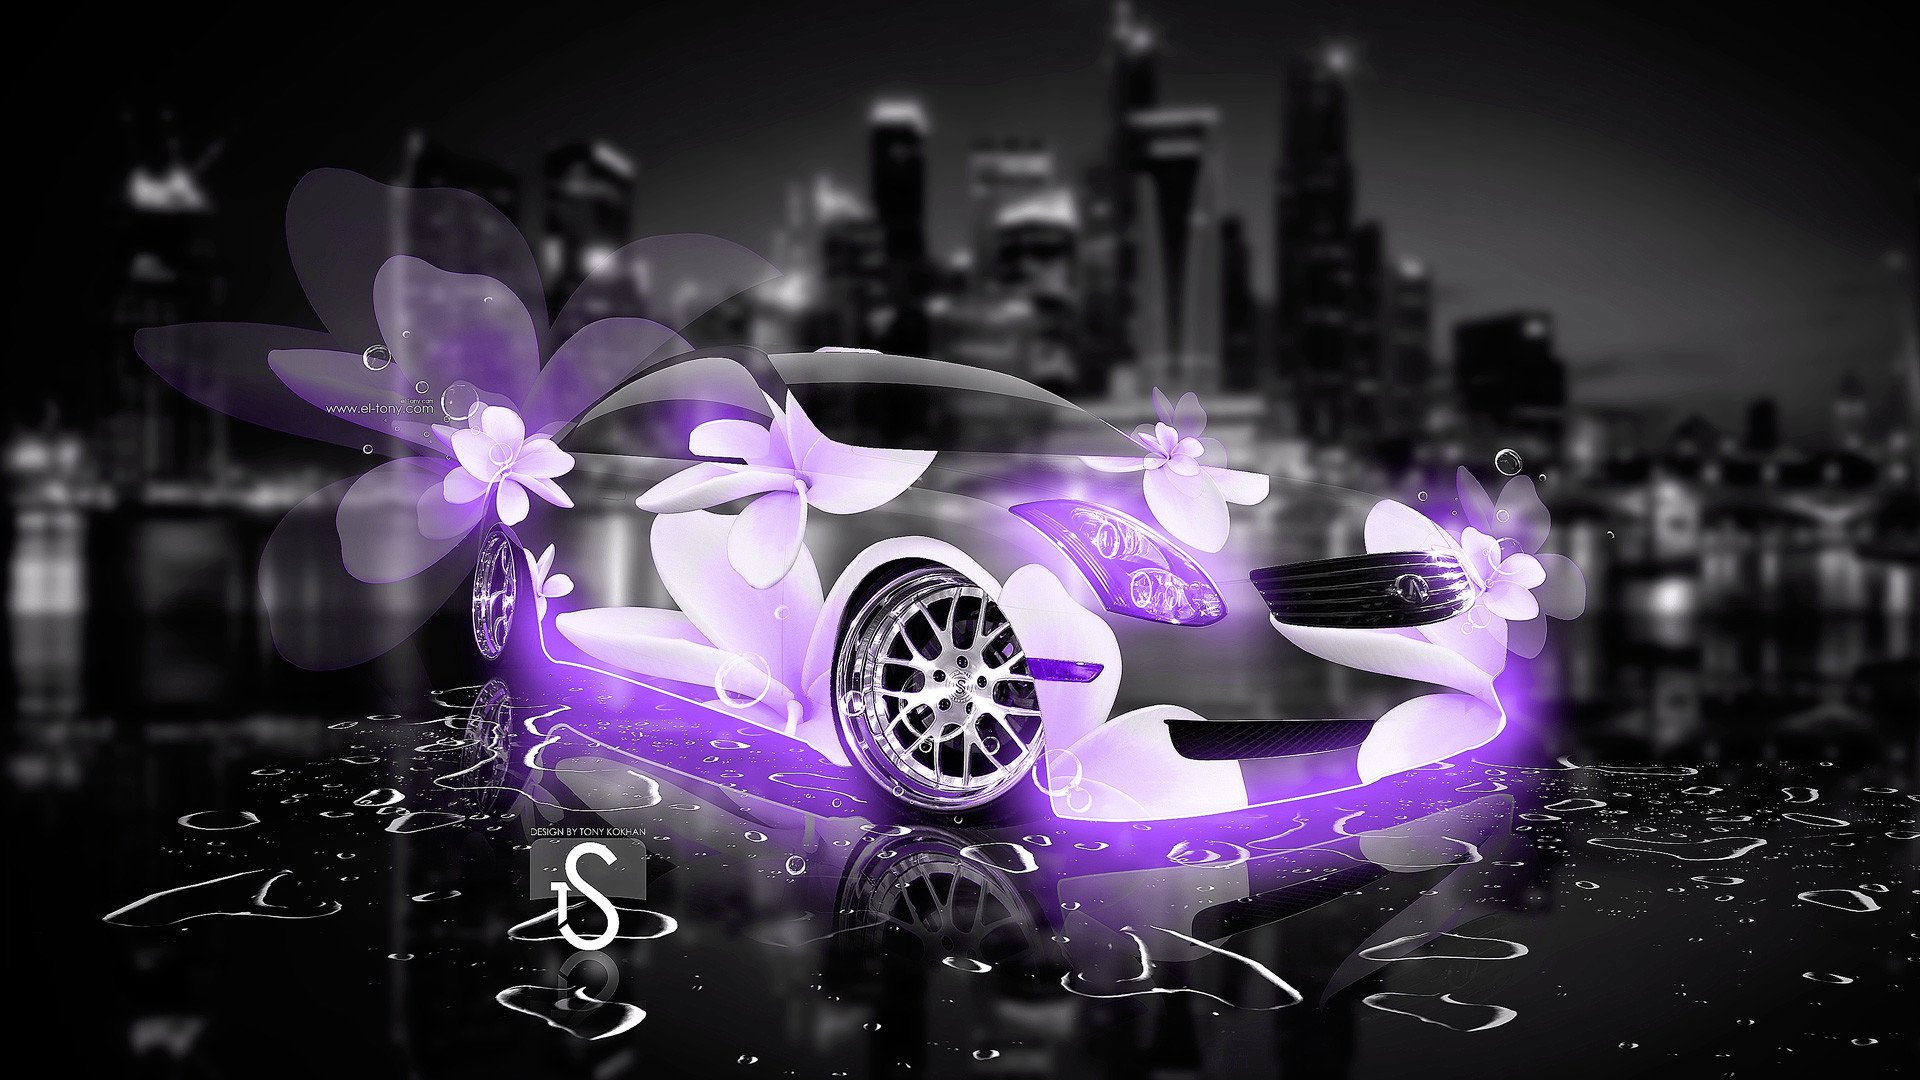 Exceptionnel 1920x1280 Infiniti G35 Infinity Car Tuning Avtooboi Stance